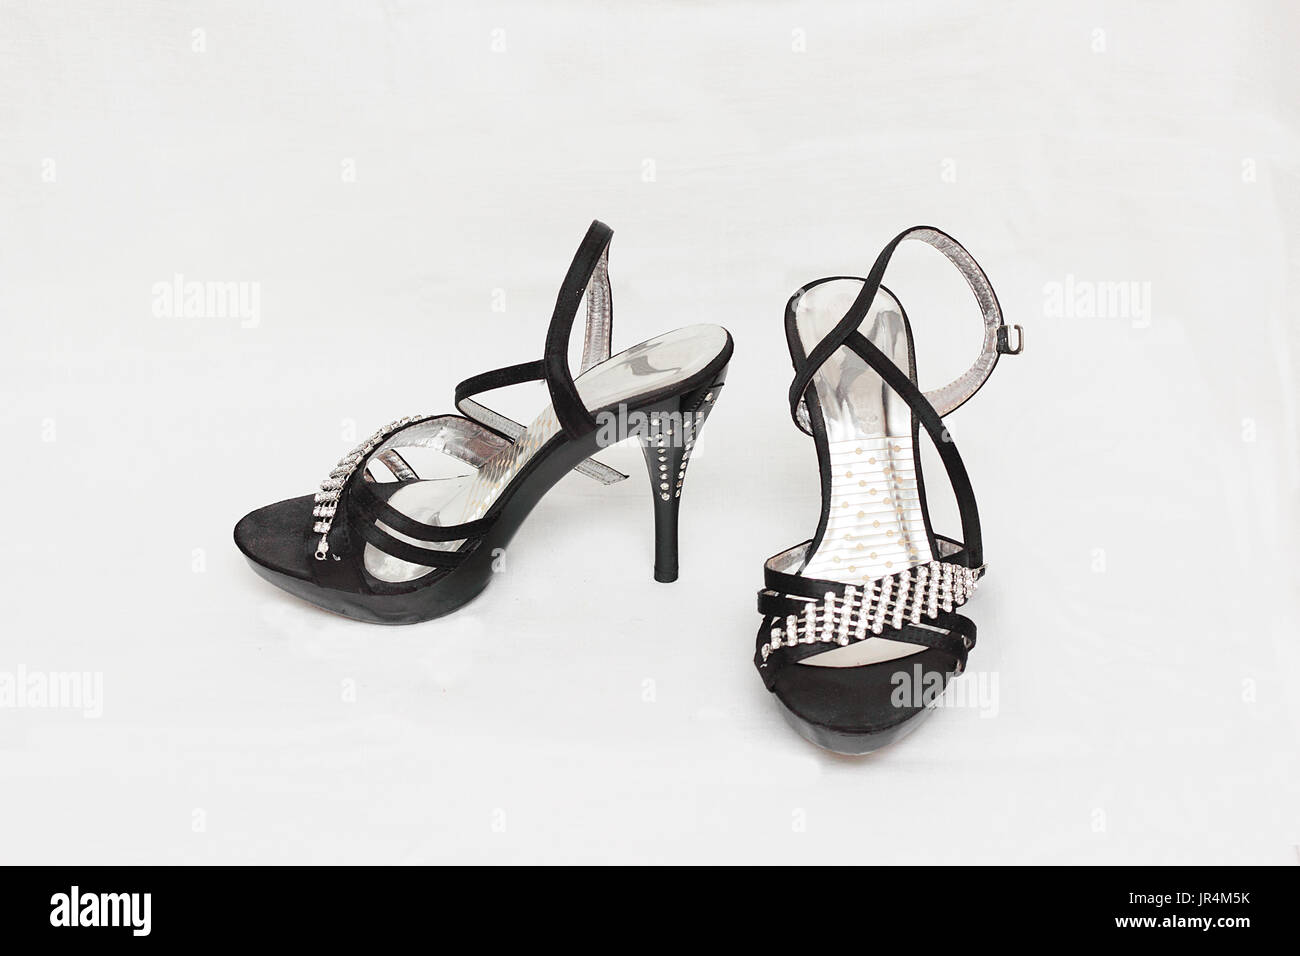 Womens Sandals Stock Photos Amp Womens Sandals Stock Images